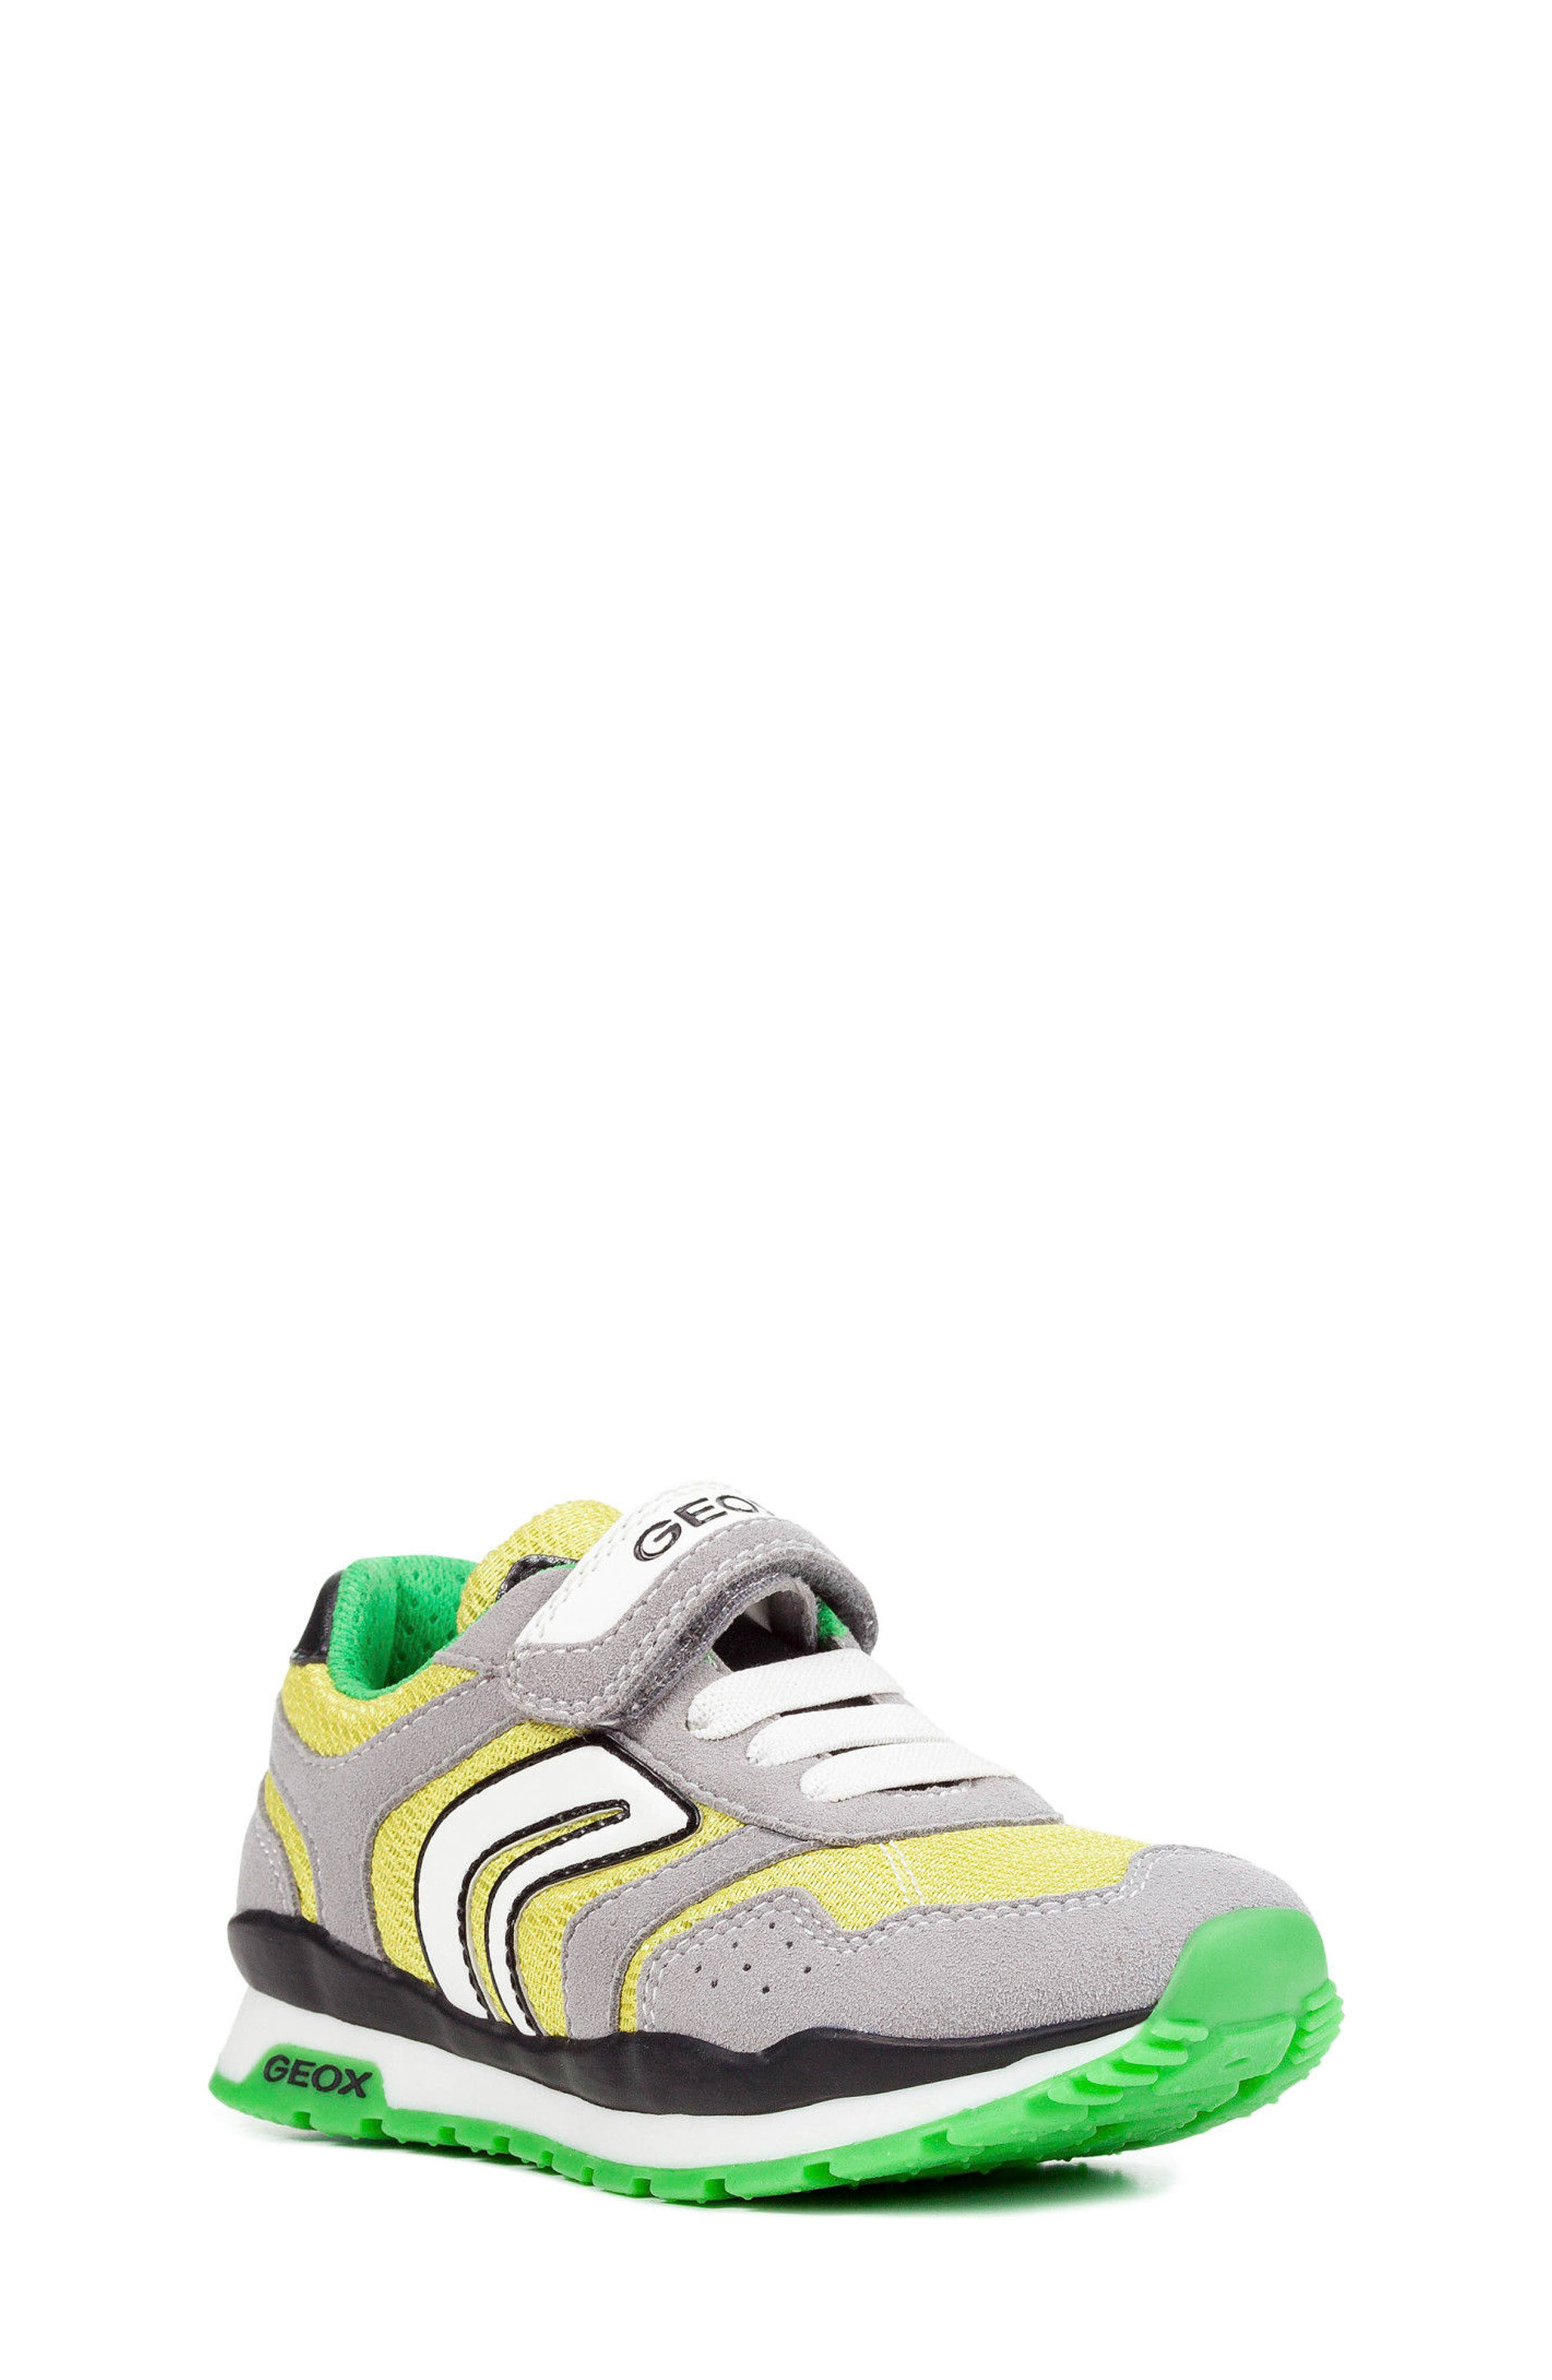 Pavel Low Top Sneaker,                         Main,                         color, GREY/ LIME